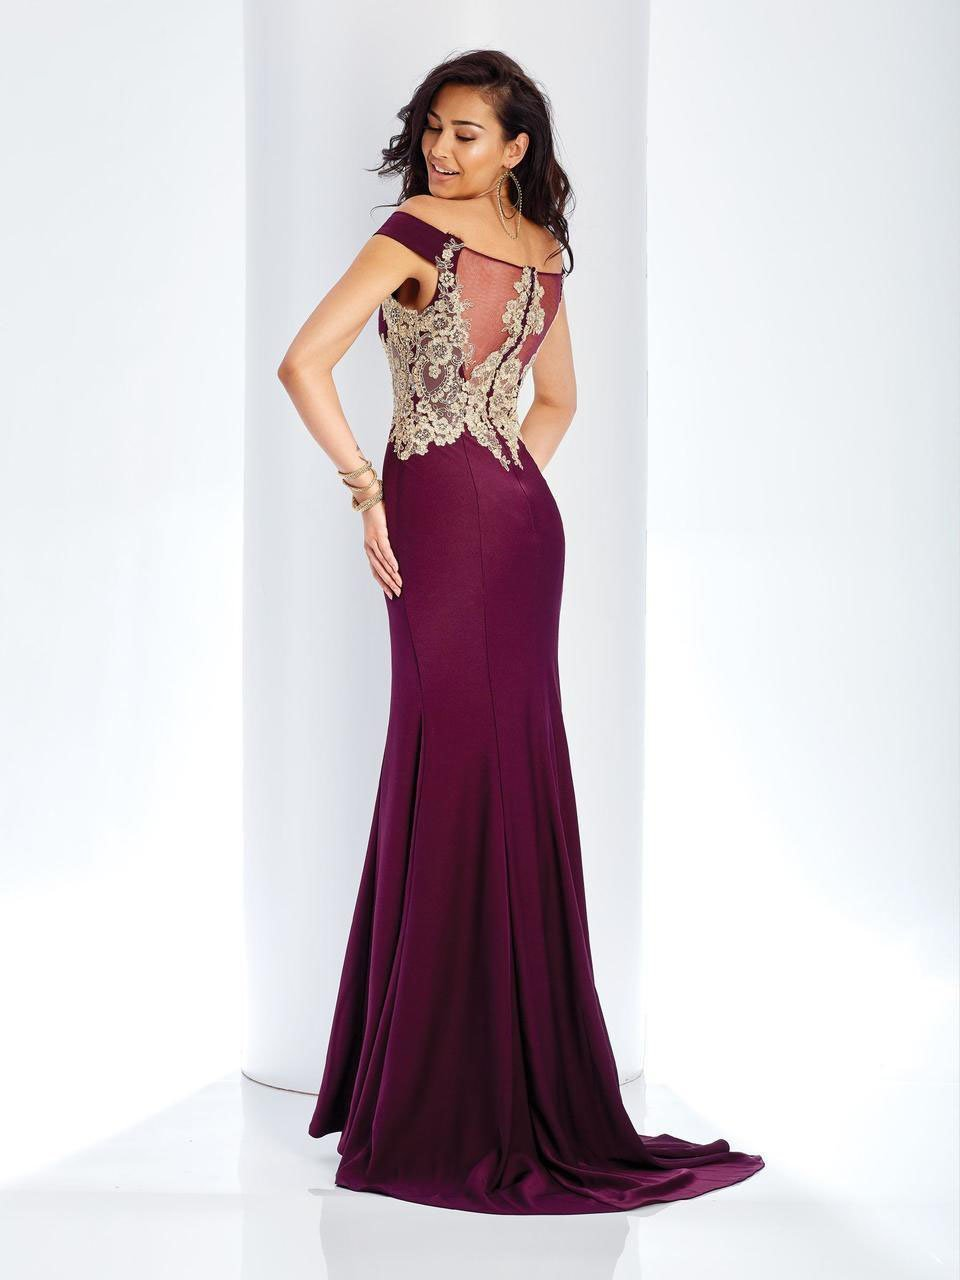 Clarisse - 3452 Gold Lace Applique Evening Gown in Purple